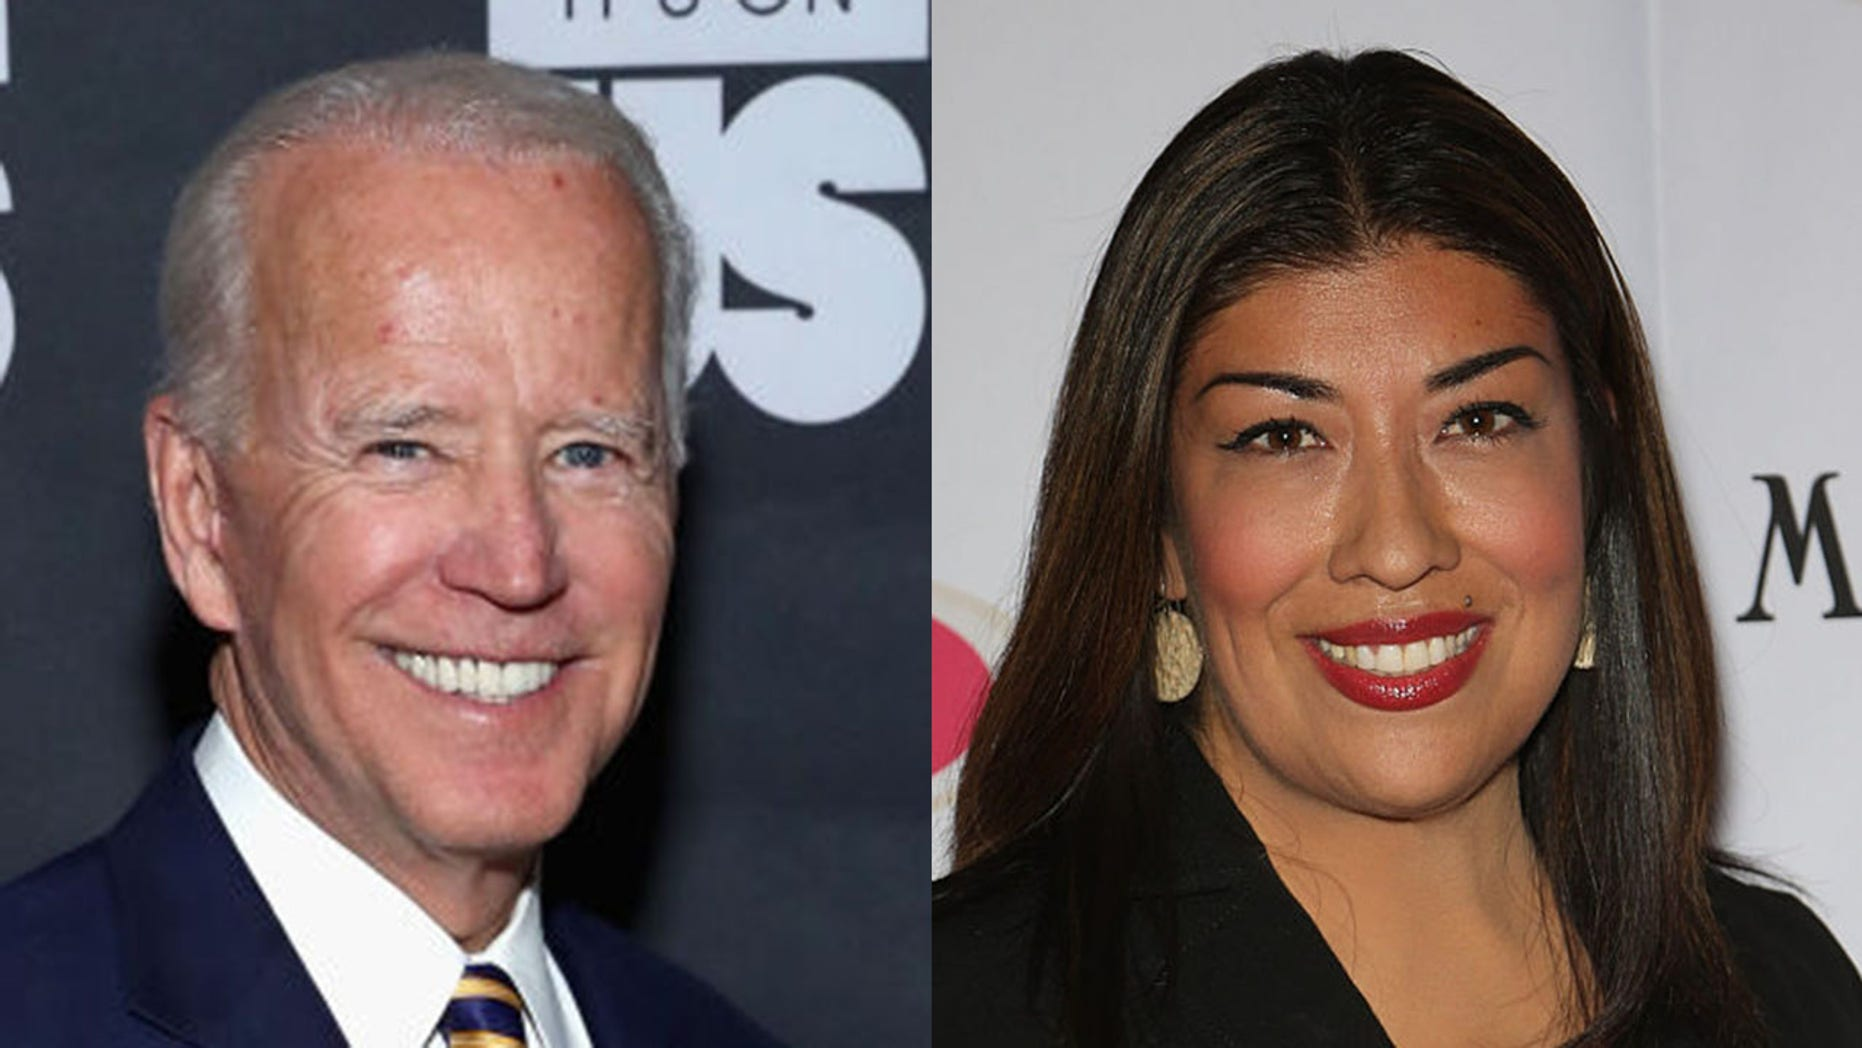 Joe Biden doesn't recall alleged kissing incident from 2014